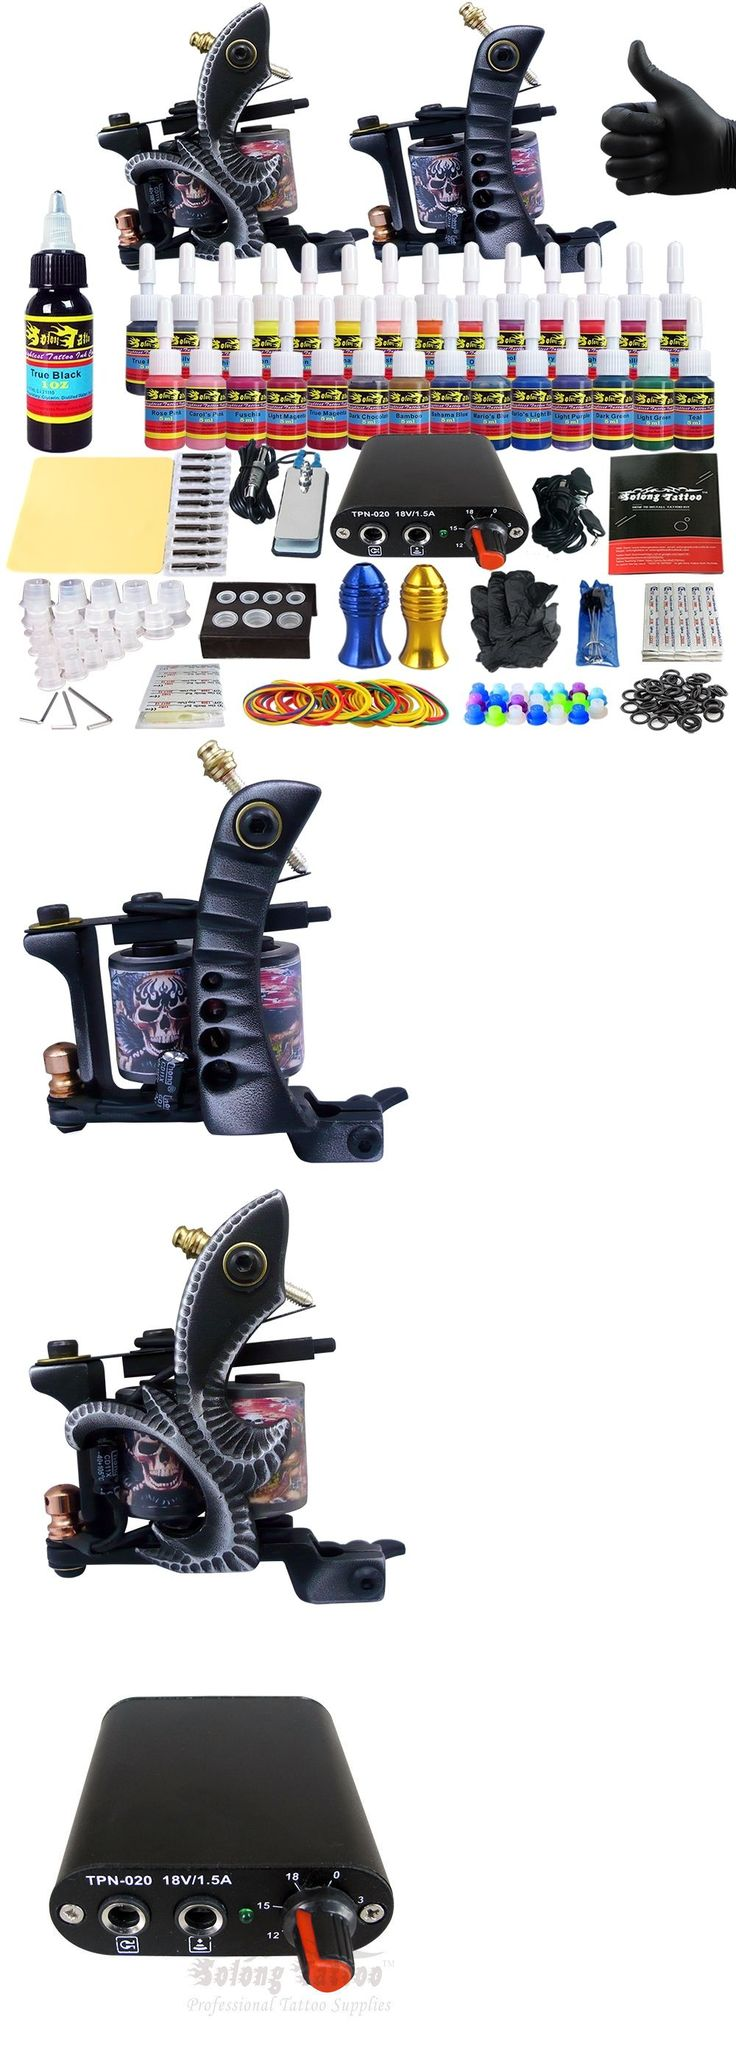 Tattoo Complete Kits: Complete Tattoo Machine Kit - 2 Profi Gun Set With 28 Ink Power Supply Tk204-25 -> BUY IT NOW ONLY: $38.9 on eBay!